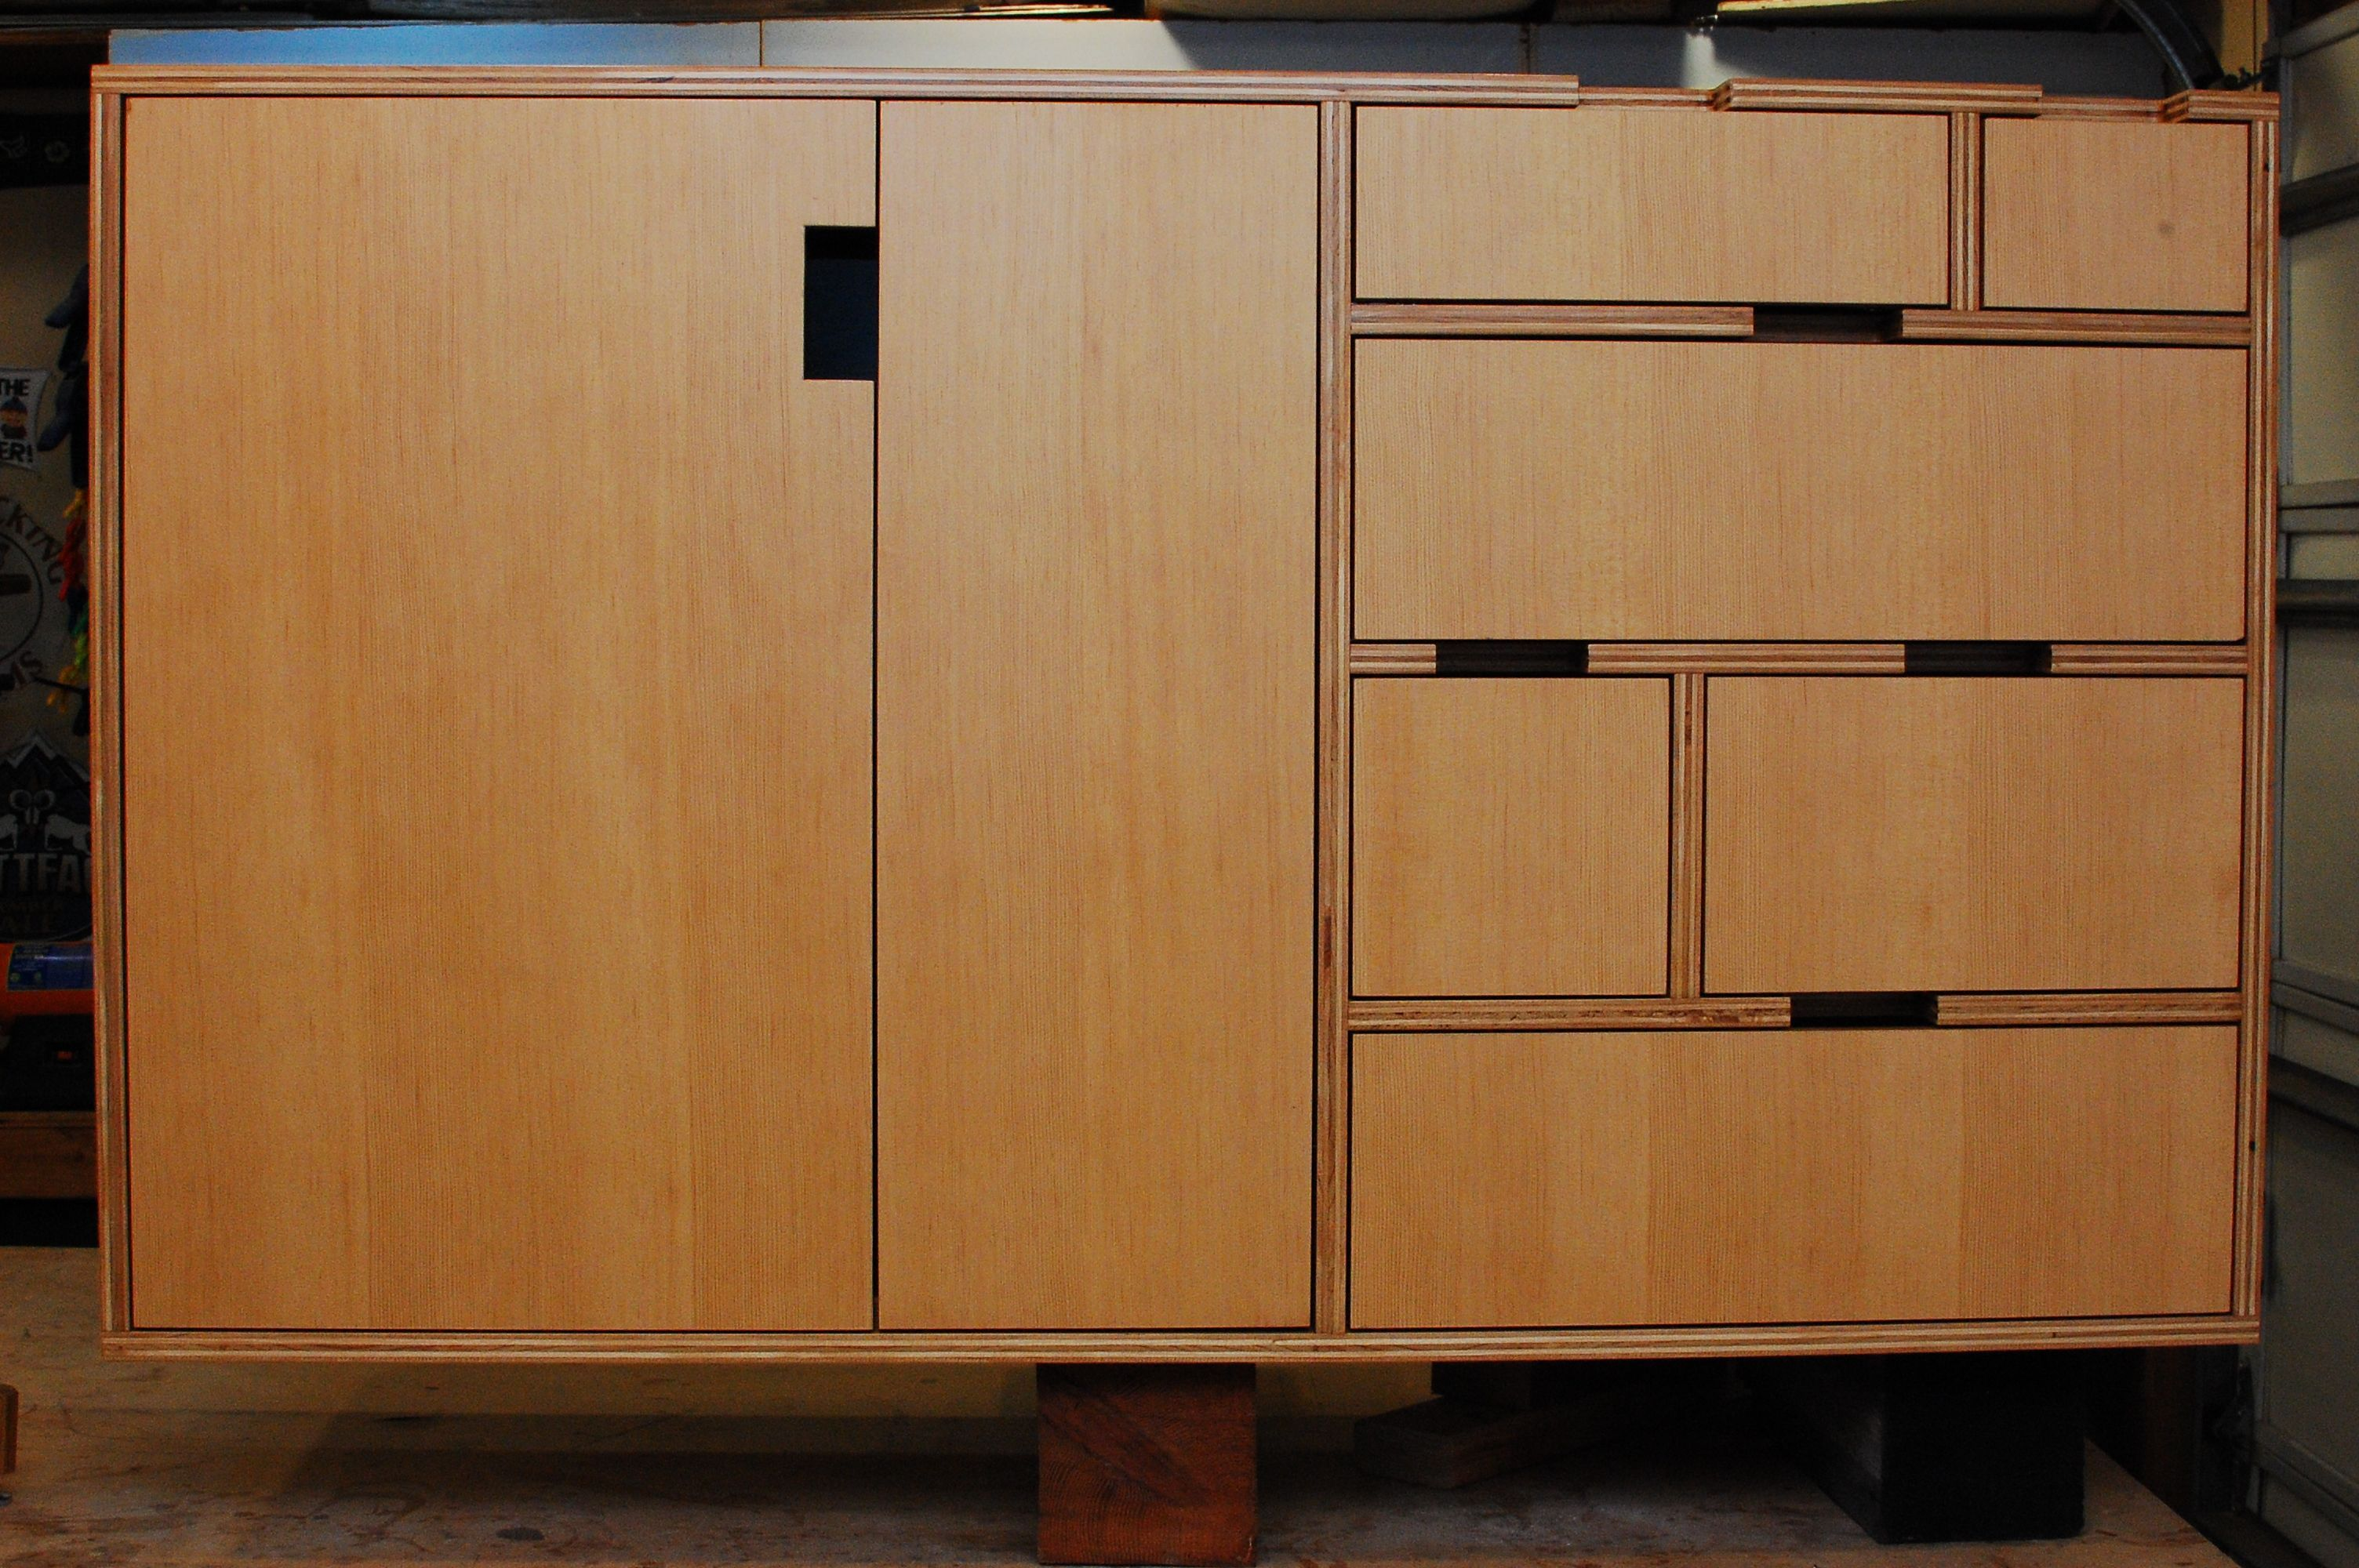 Creative Kerf Design For Your Home Furniture And Accessories: Prefinished  Plywood For Cabinets | Kerf